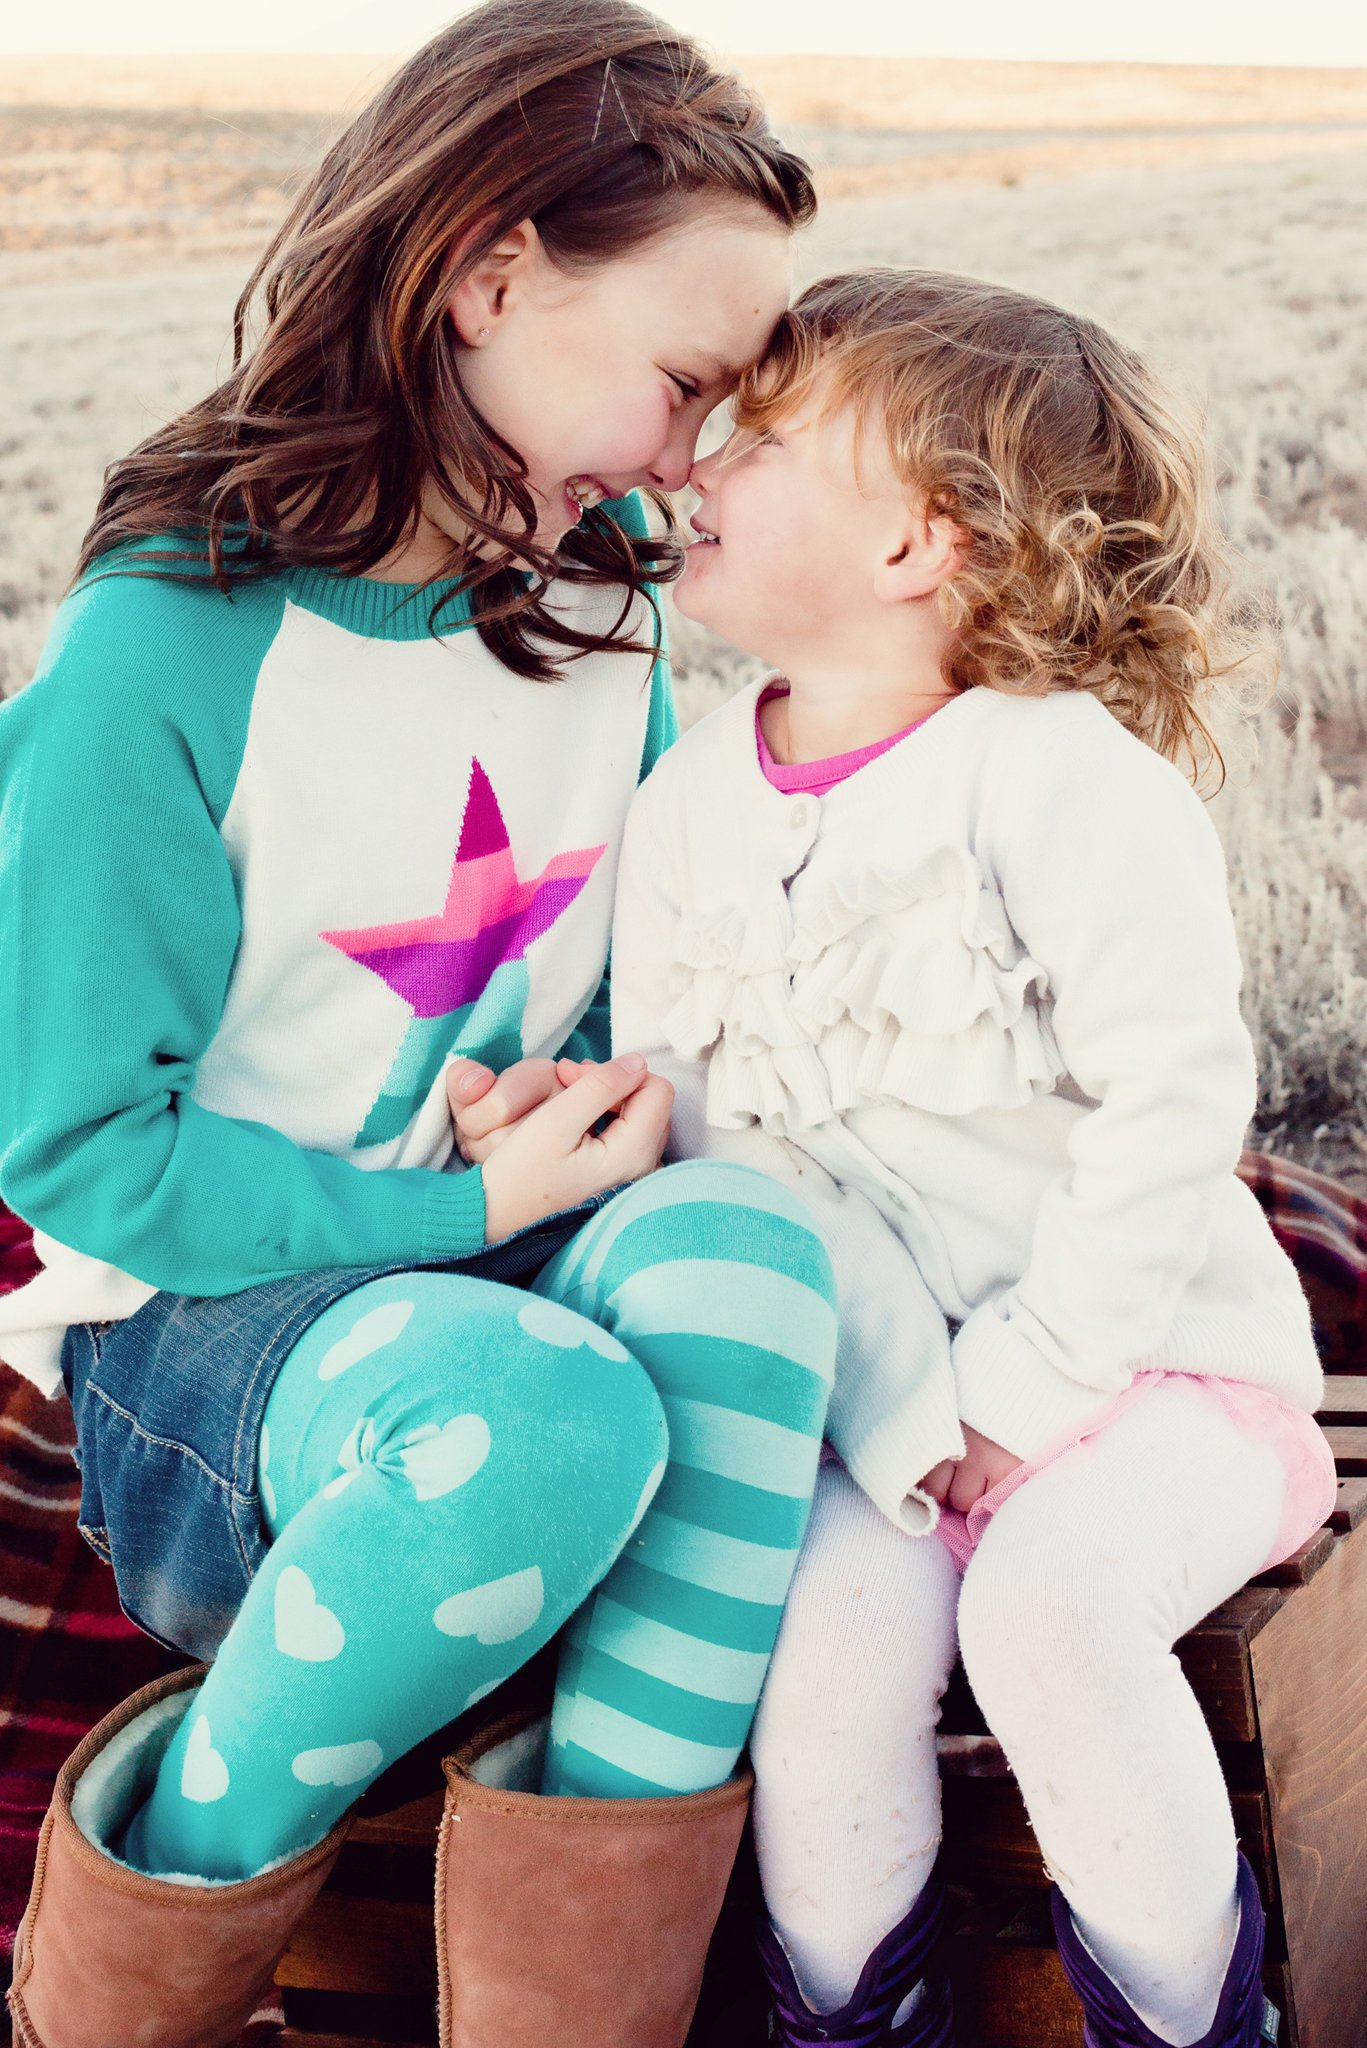 children'sphotography_candacemillerphotography_montrose_colorado